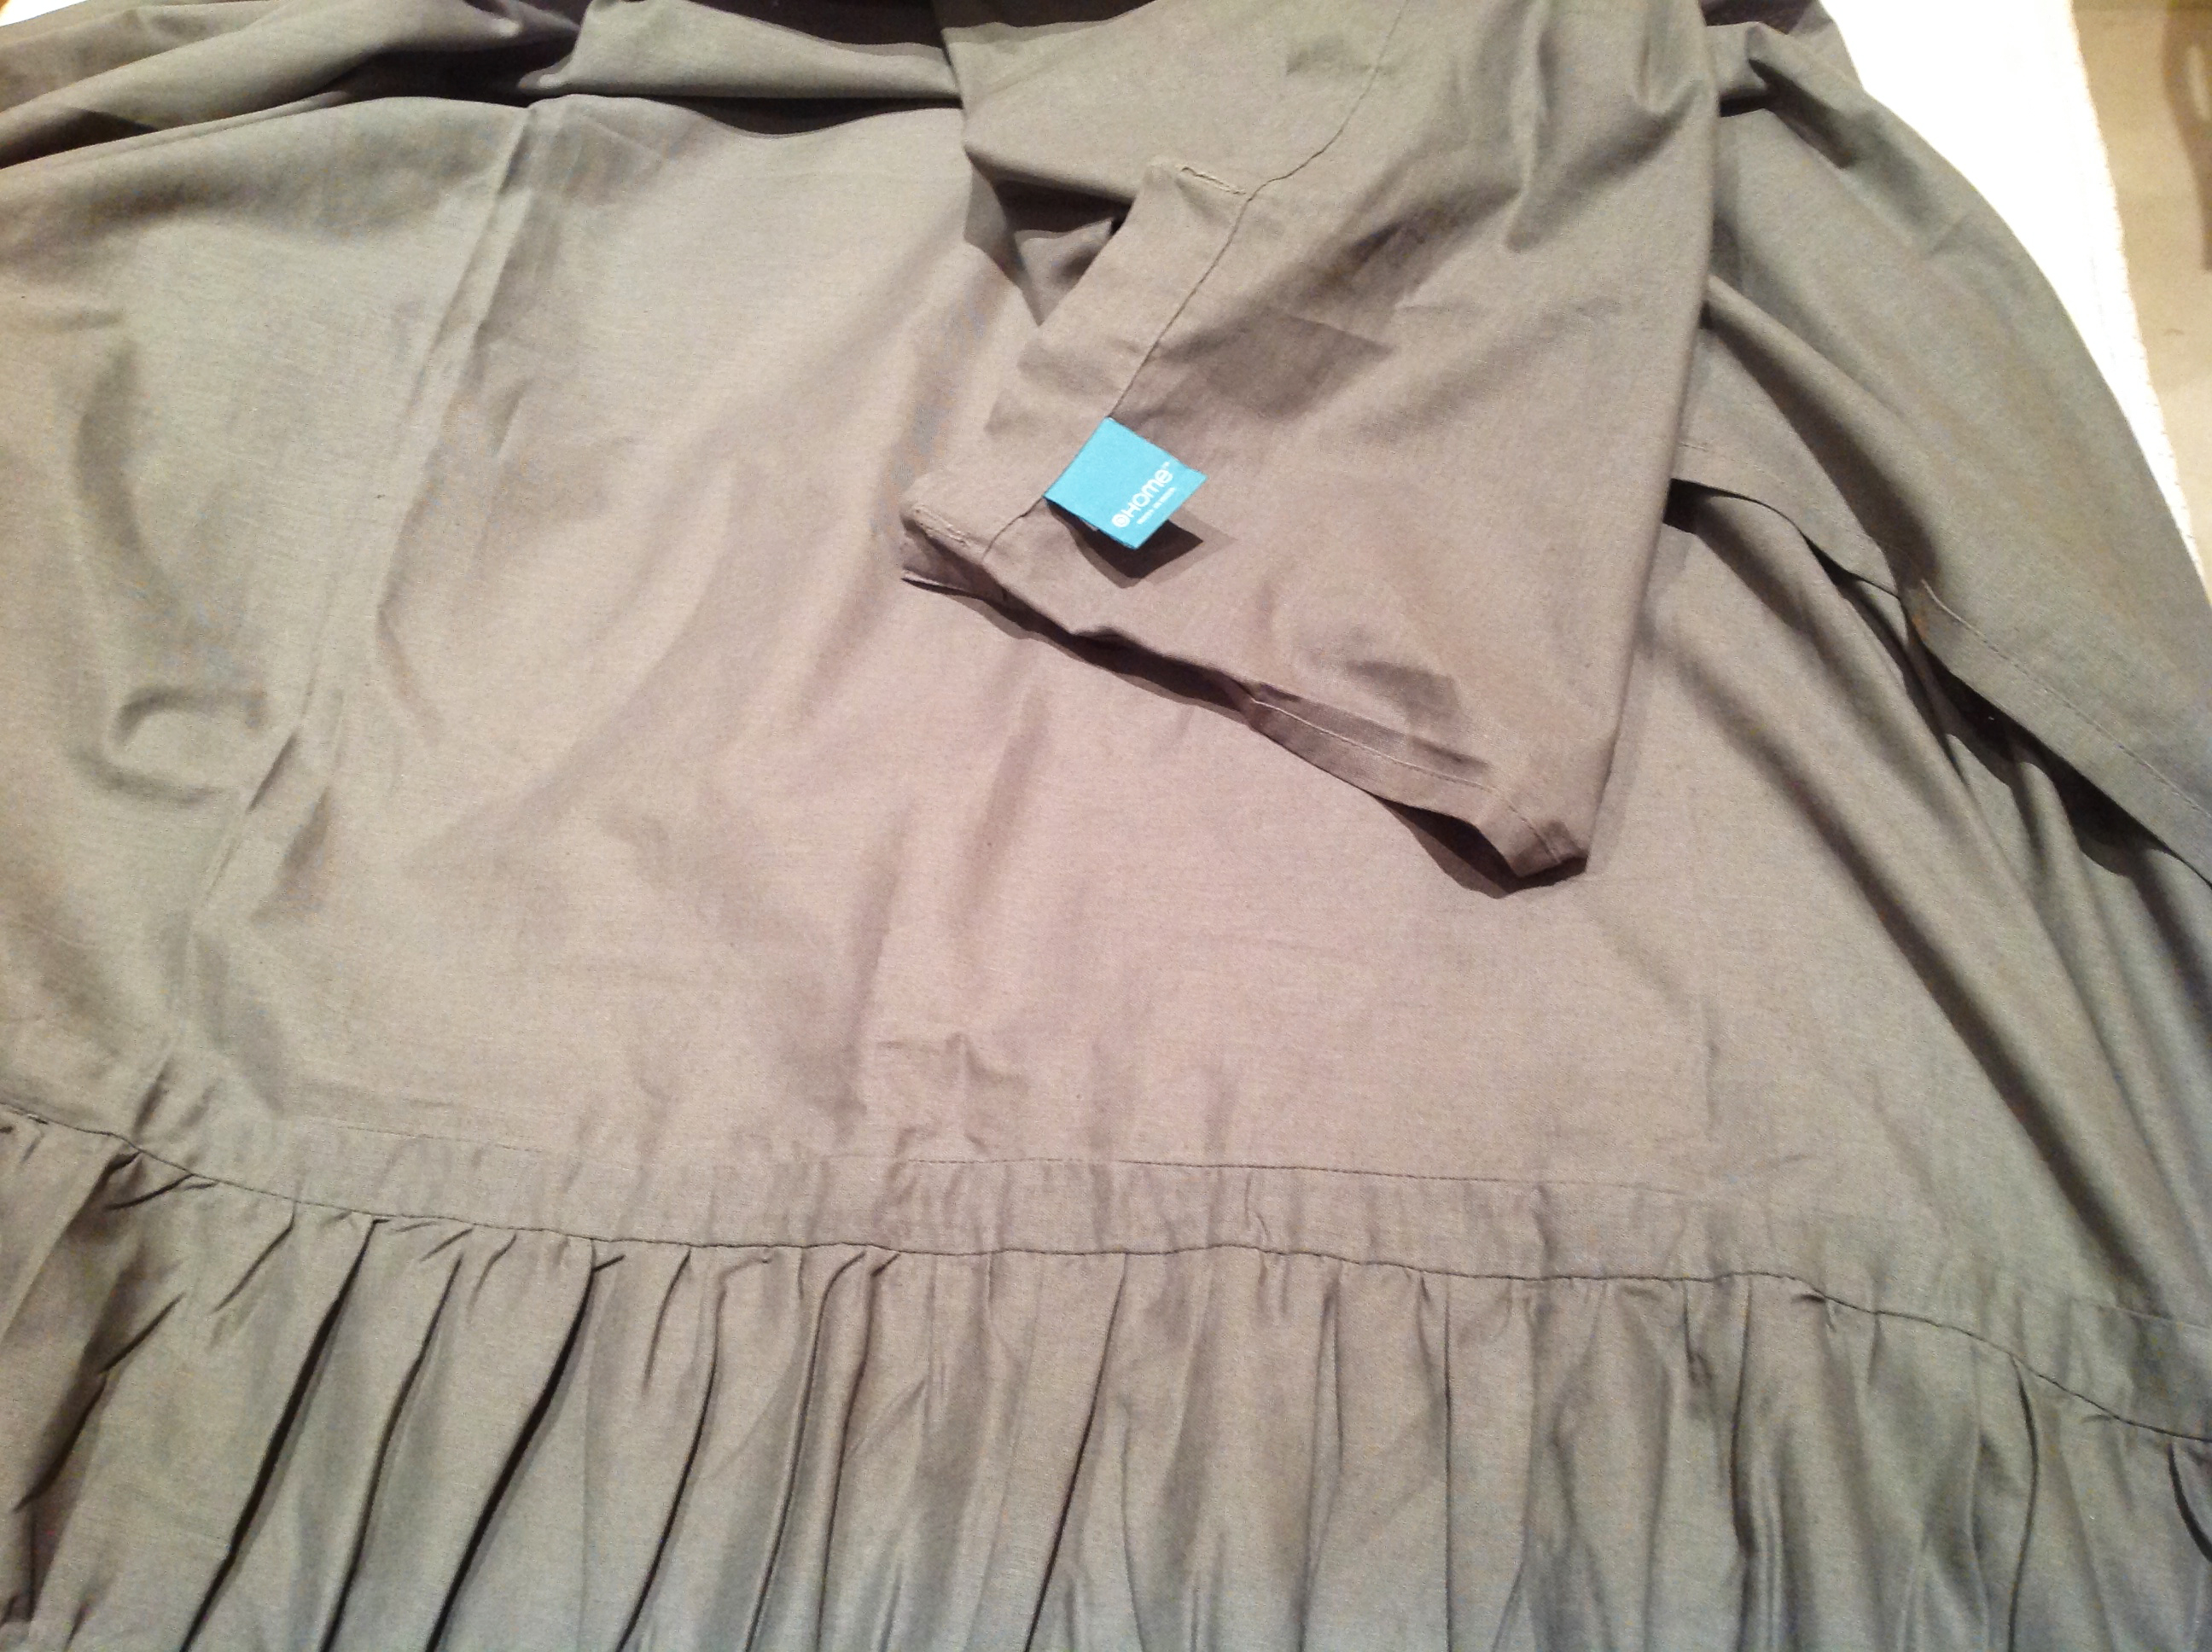 pottery belt ebay robe now on sleepwear barn fur w size new buy medium and pin it only tag o gray robes no monogram faux barns